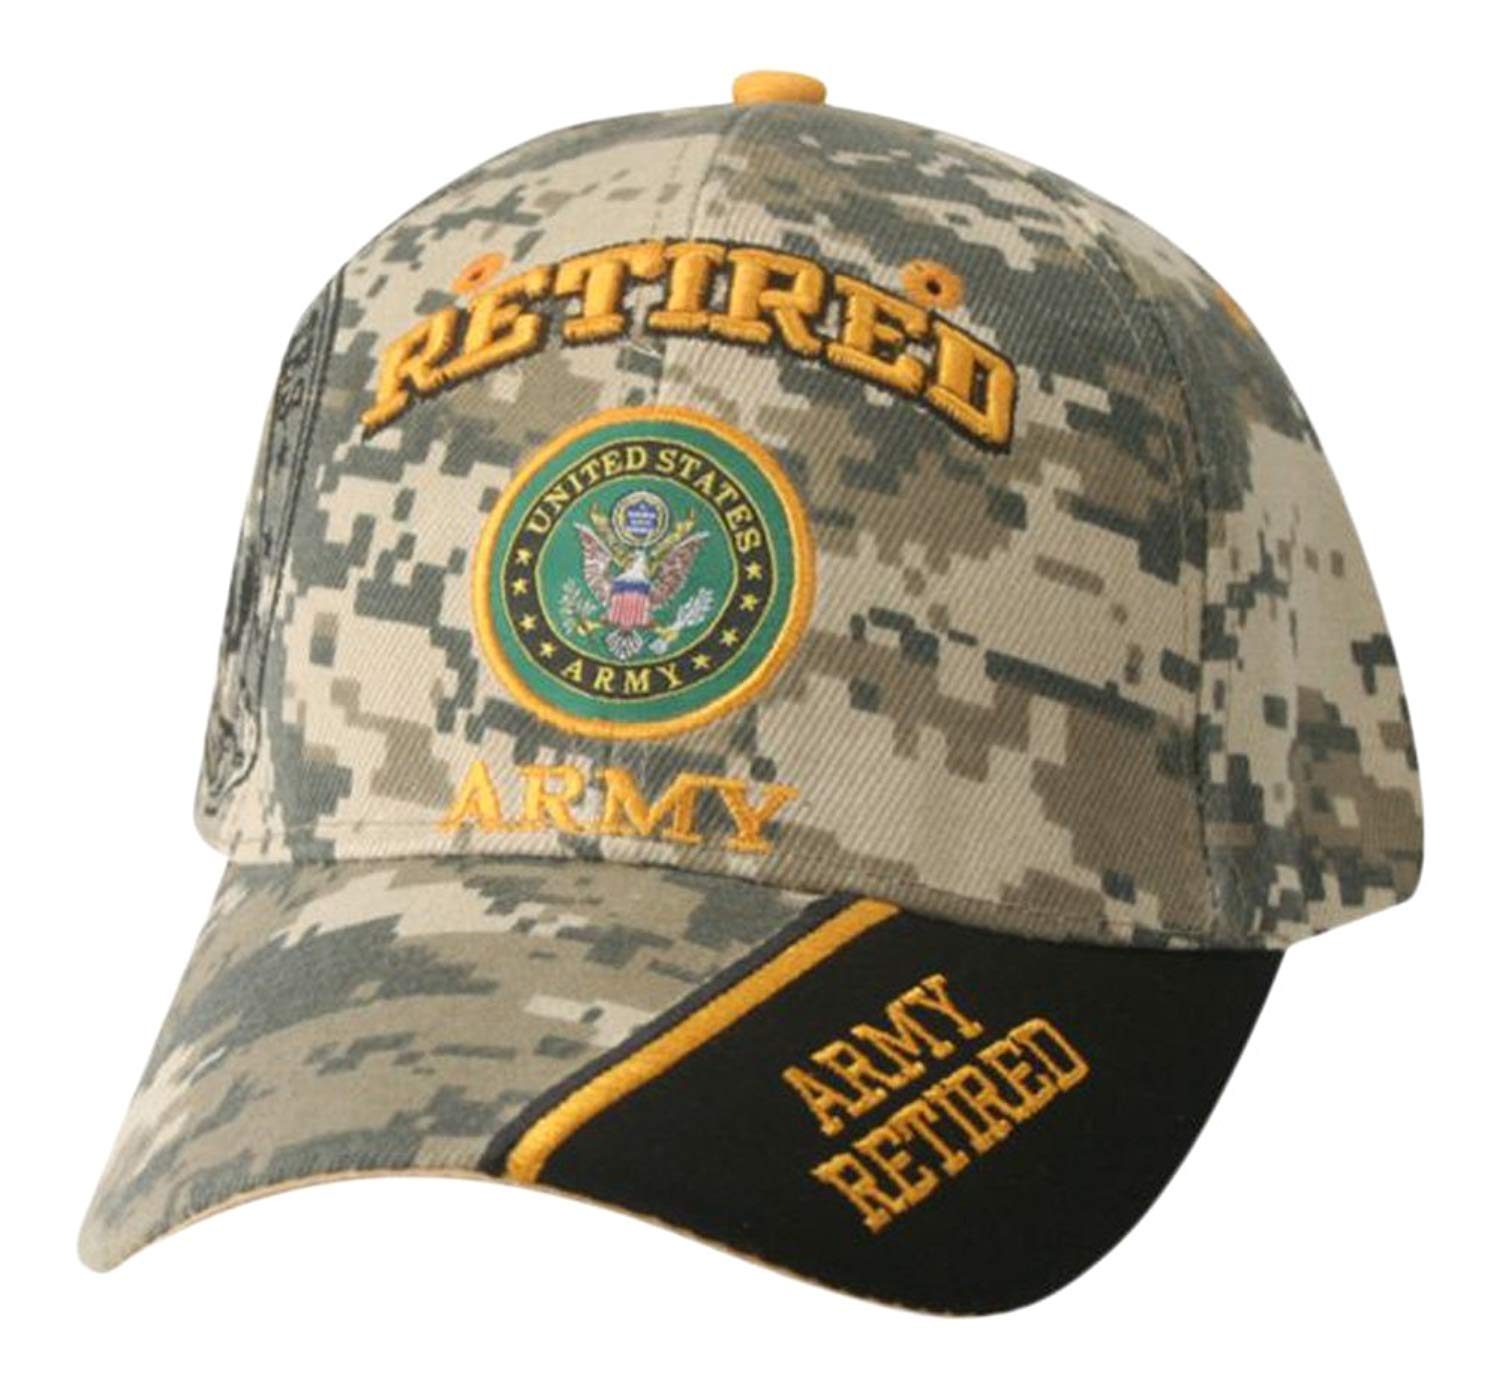 0fc503bd8c5d21 Get Quotations · Mitchell Proffitt Army Retired Hat-Camo Army Hat with  Multiple Positions